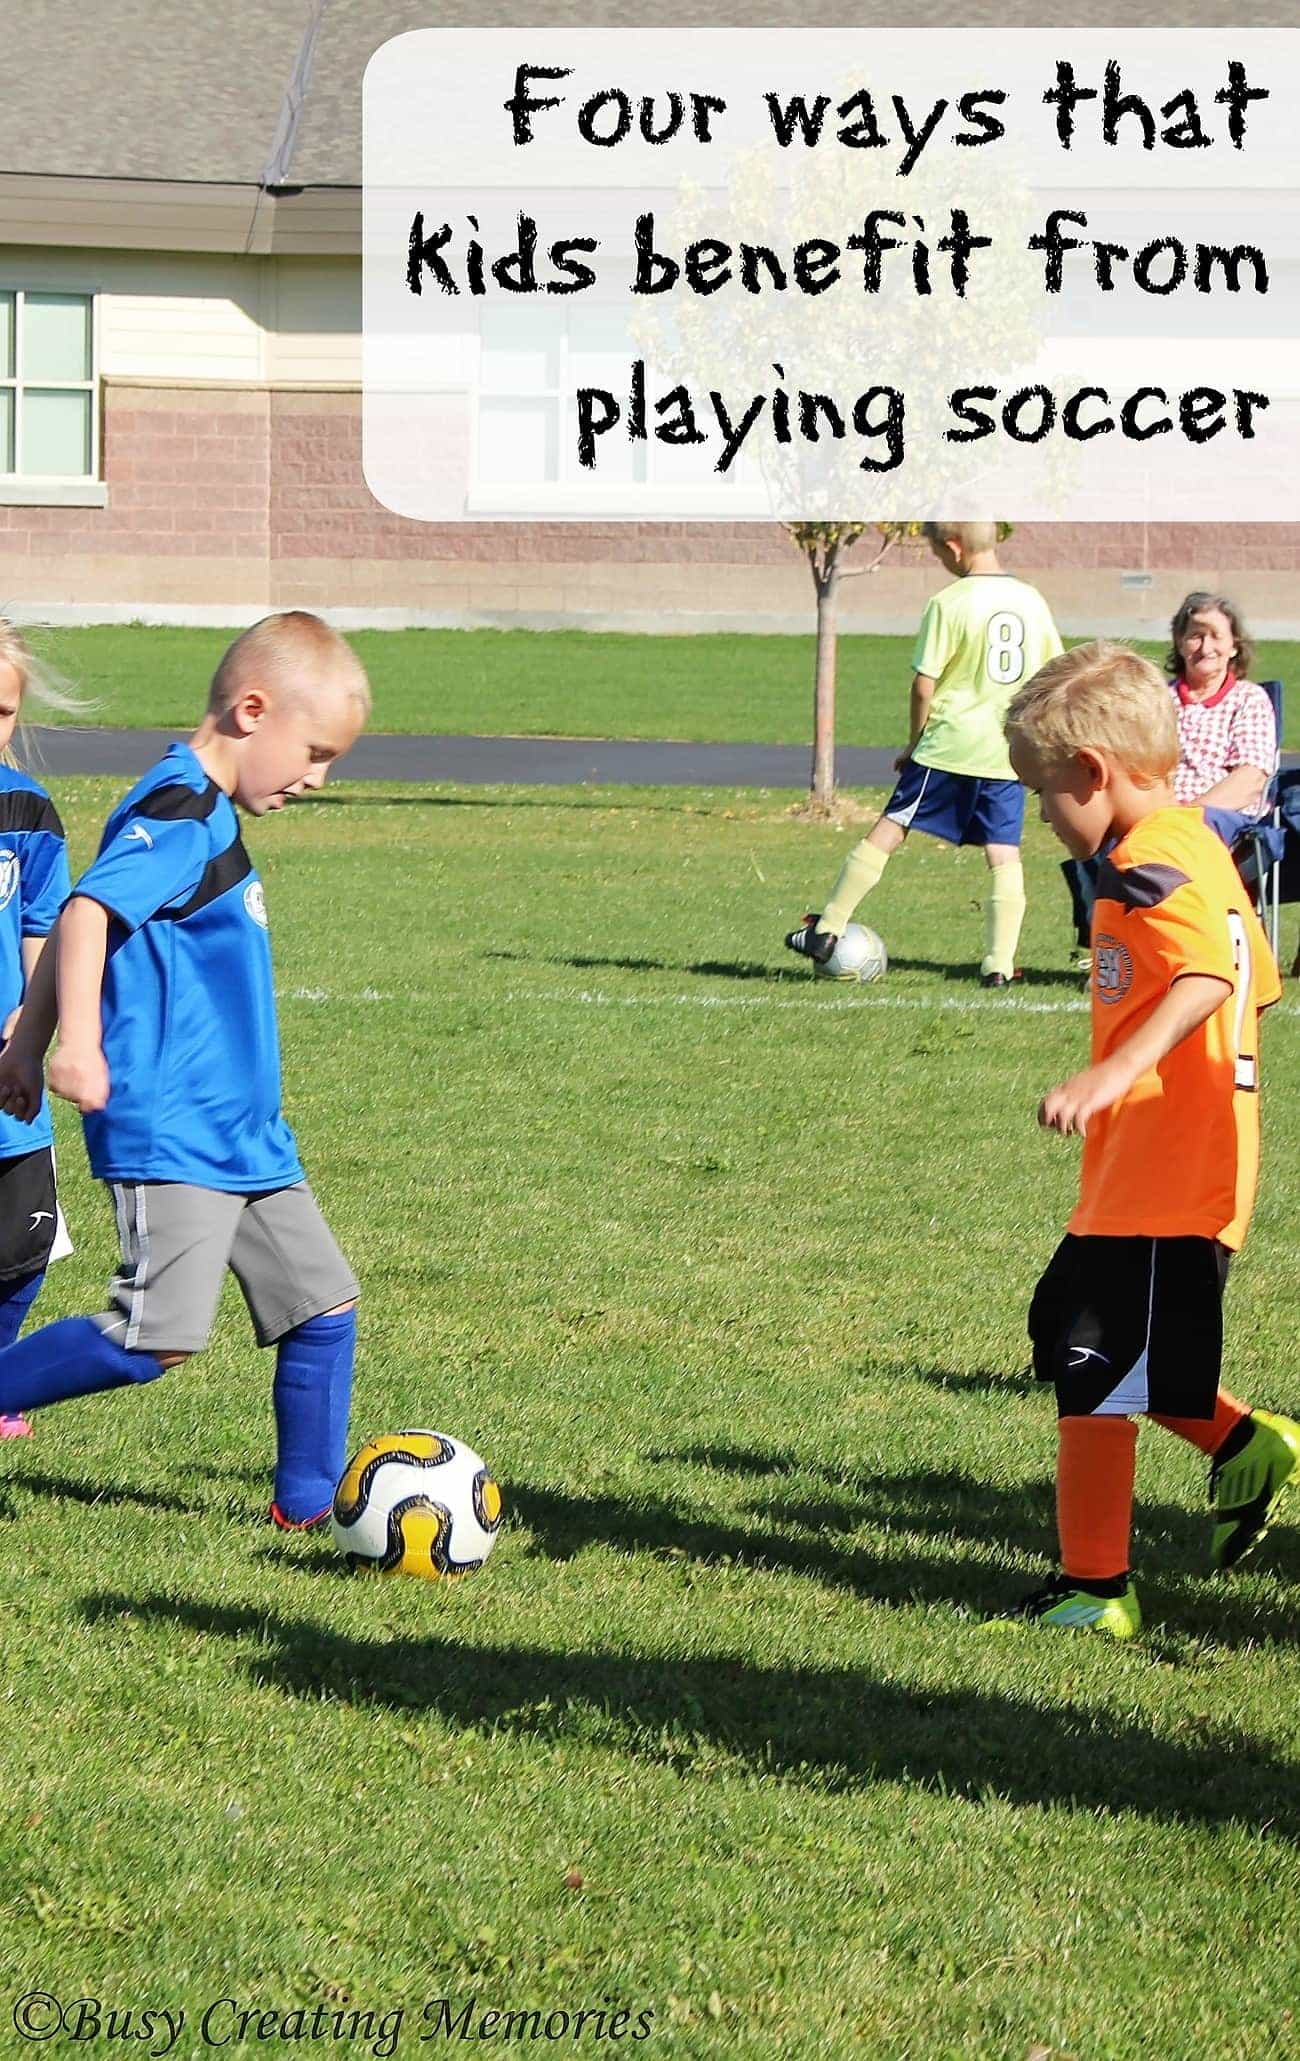 Four ways that kids benefit from playing soccer